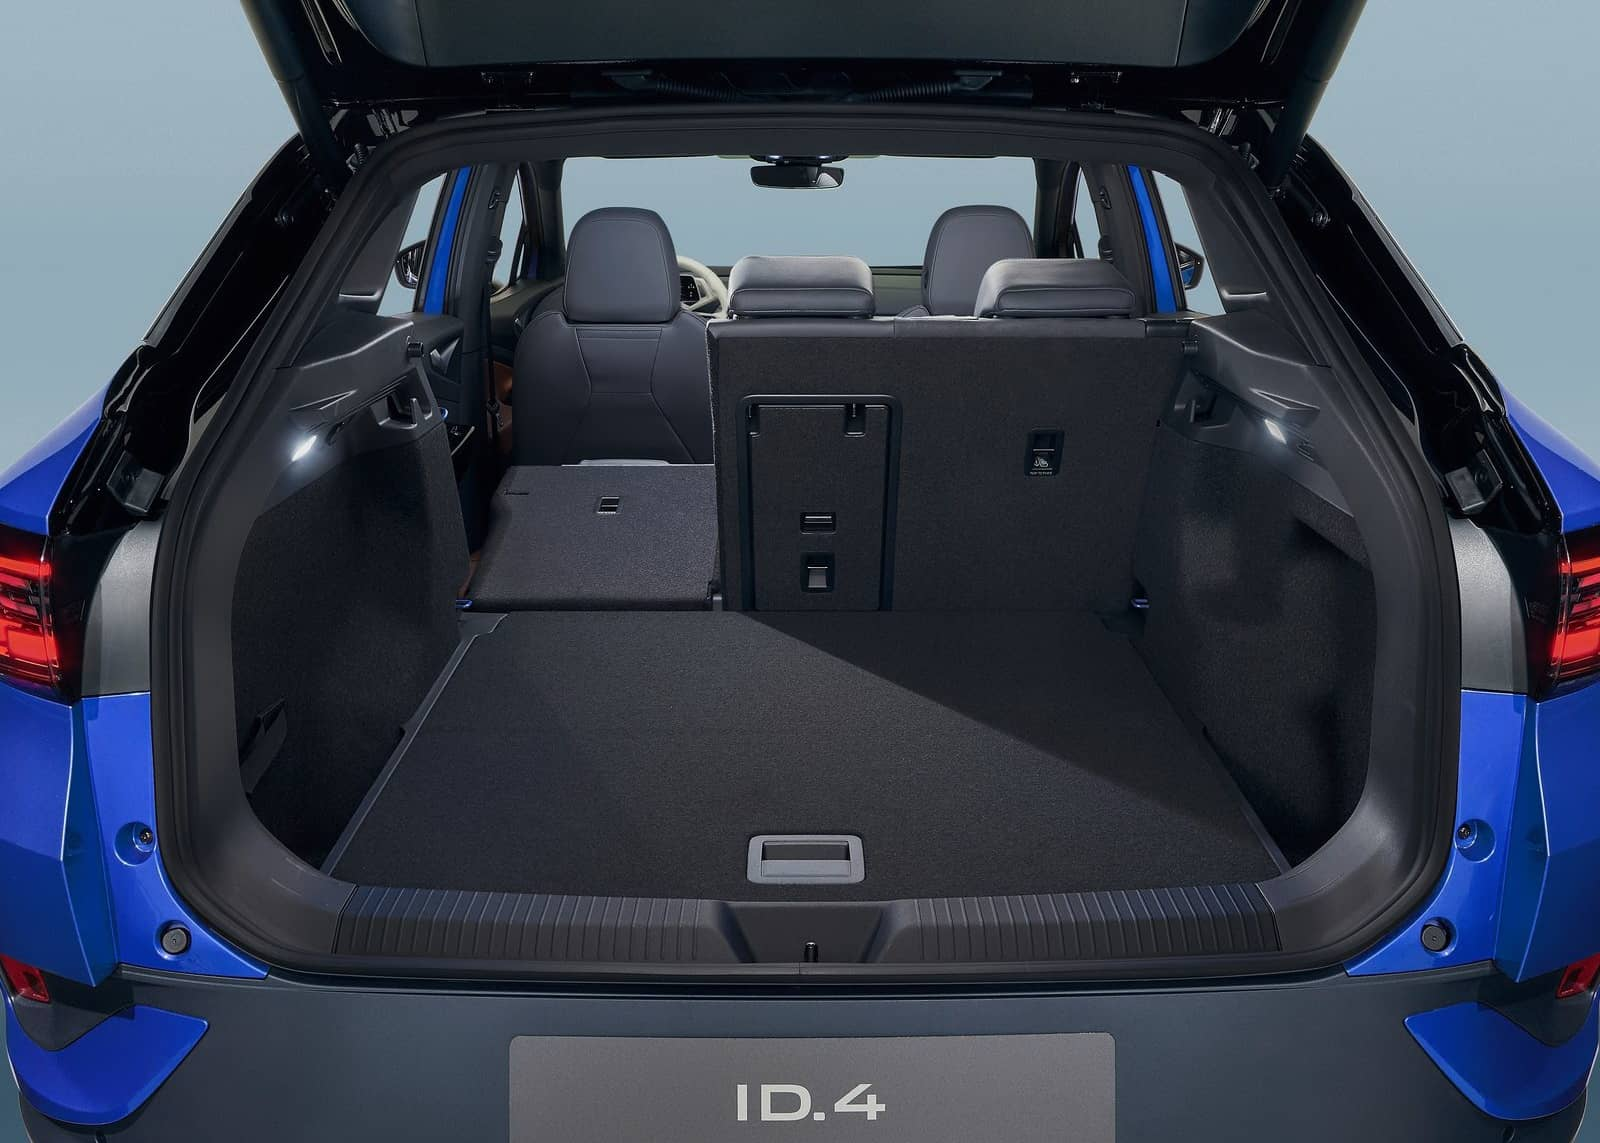 Volkswagen-ID.4_1st_Edition-2021-1600-3a